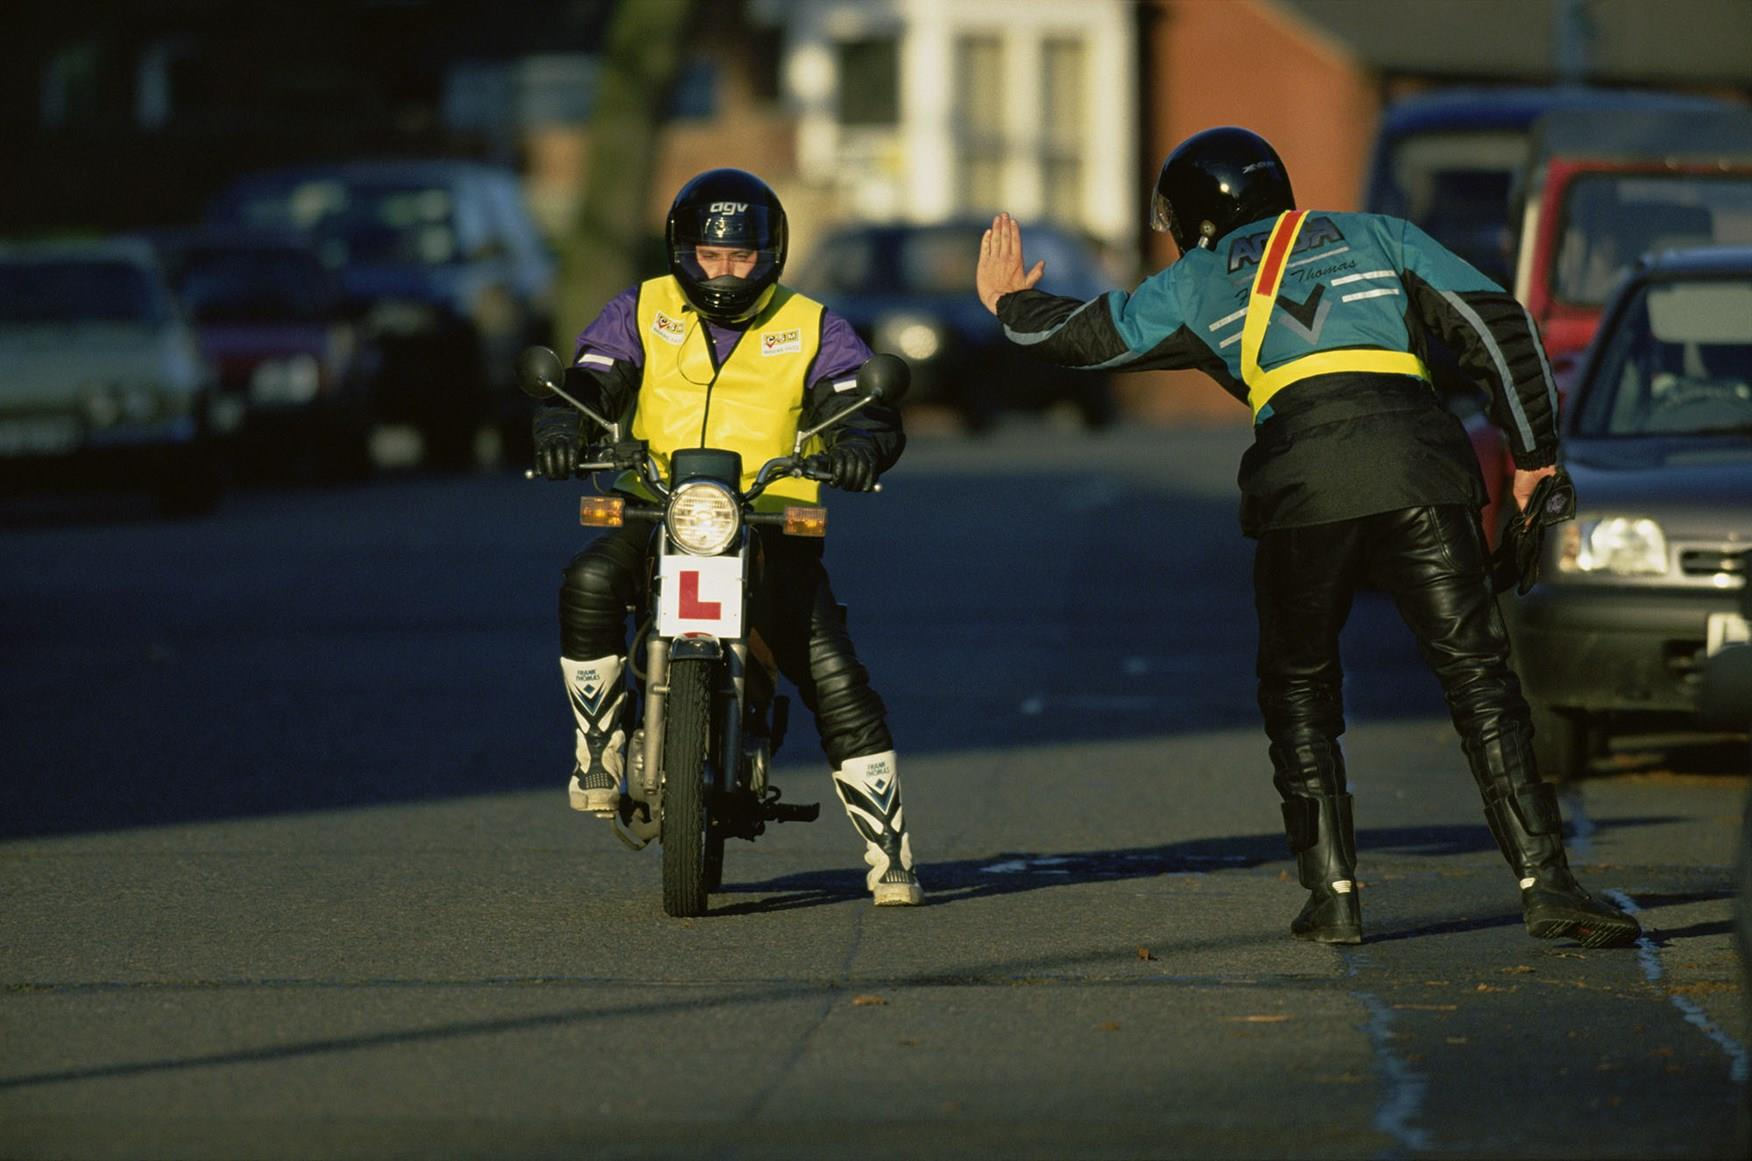 An emergency stop is a vital part of learning to ride a motorcycle